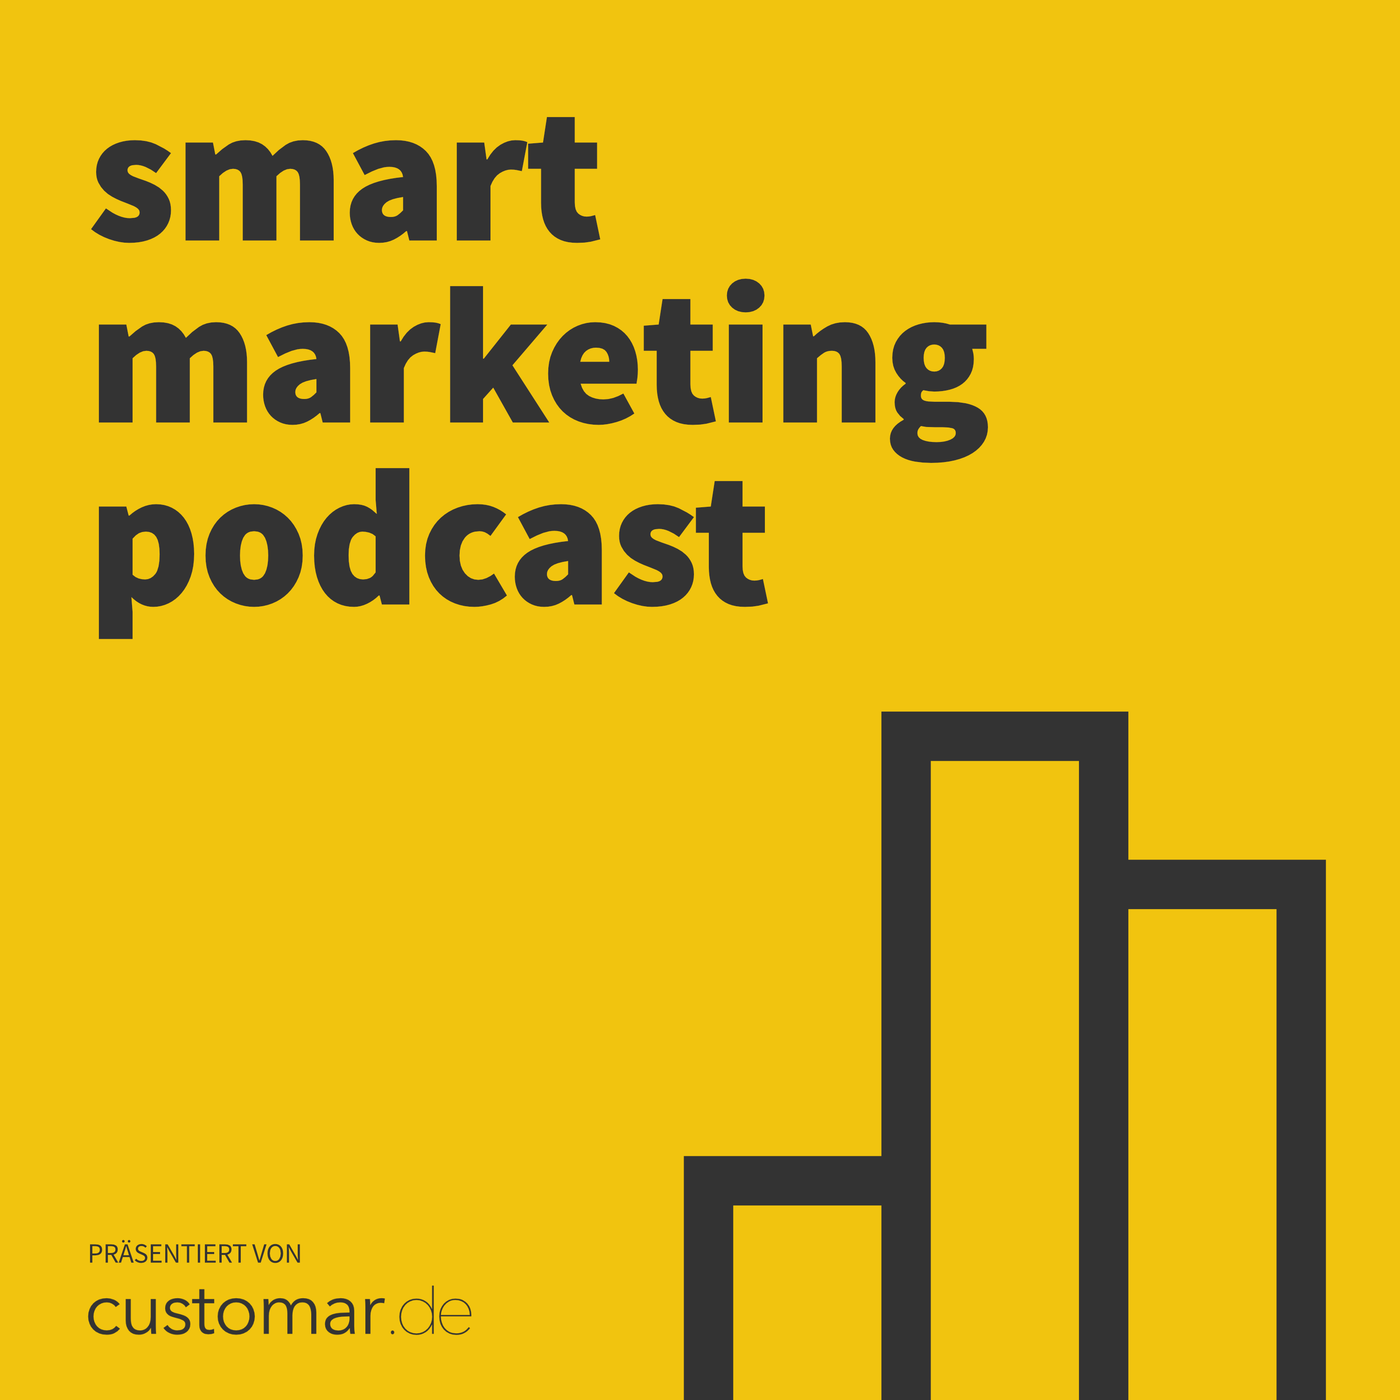 Smart Marketing Podcast